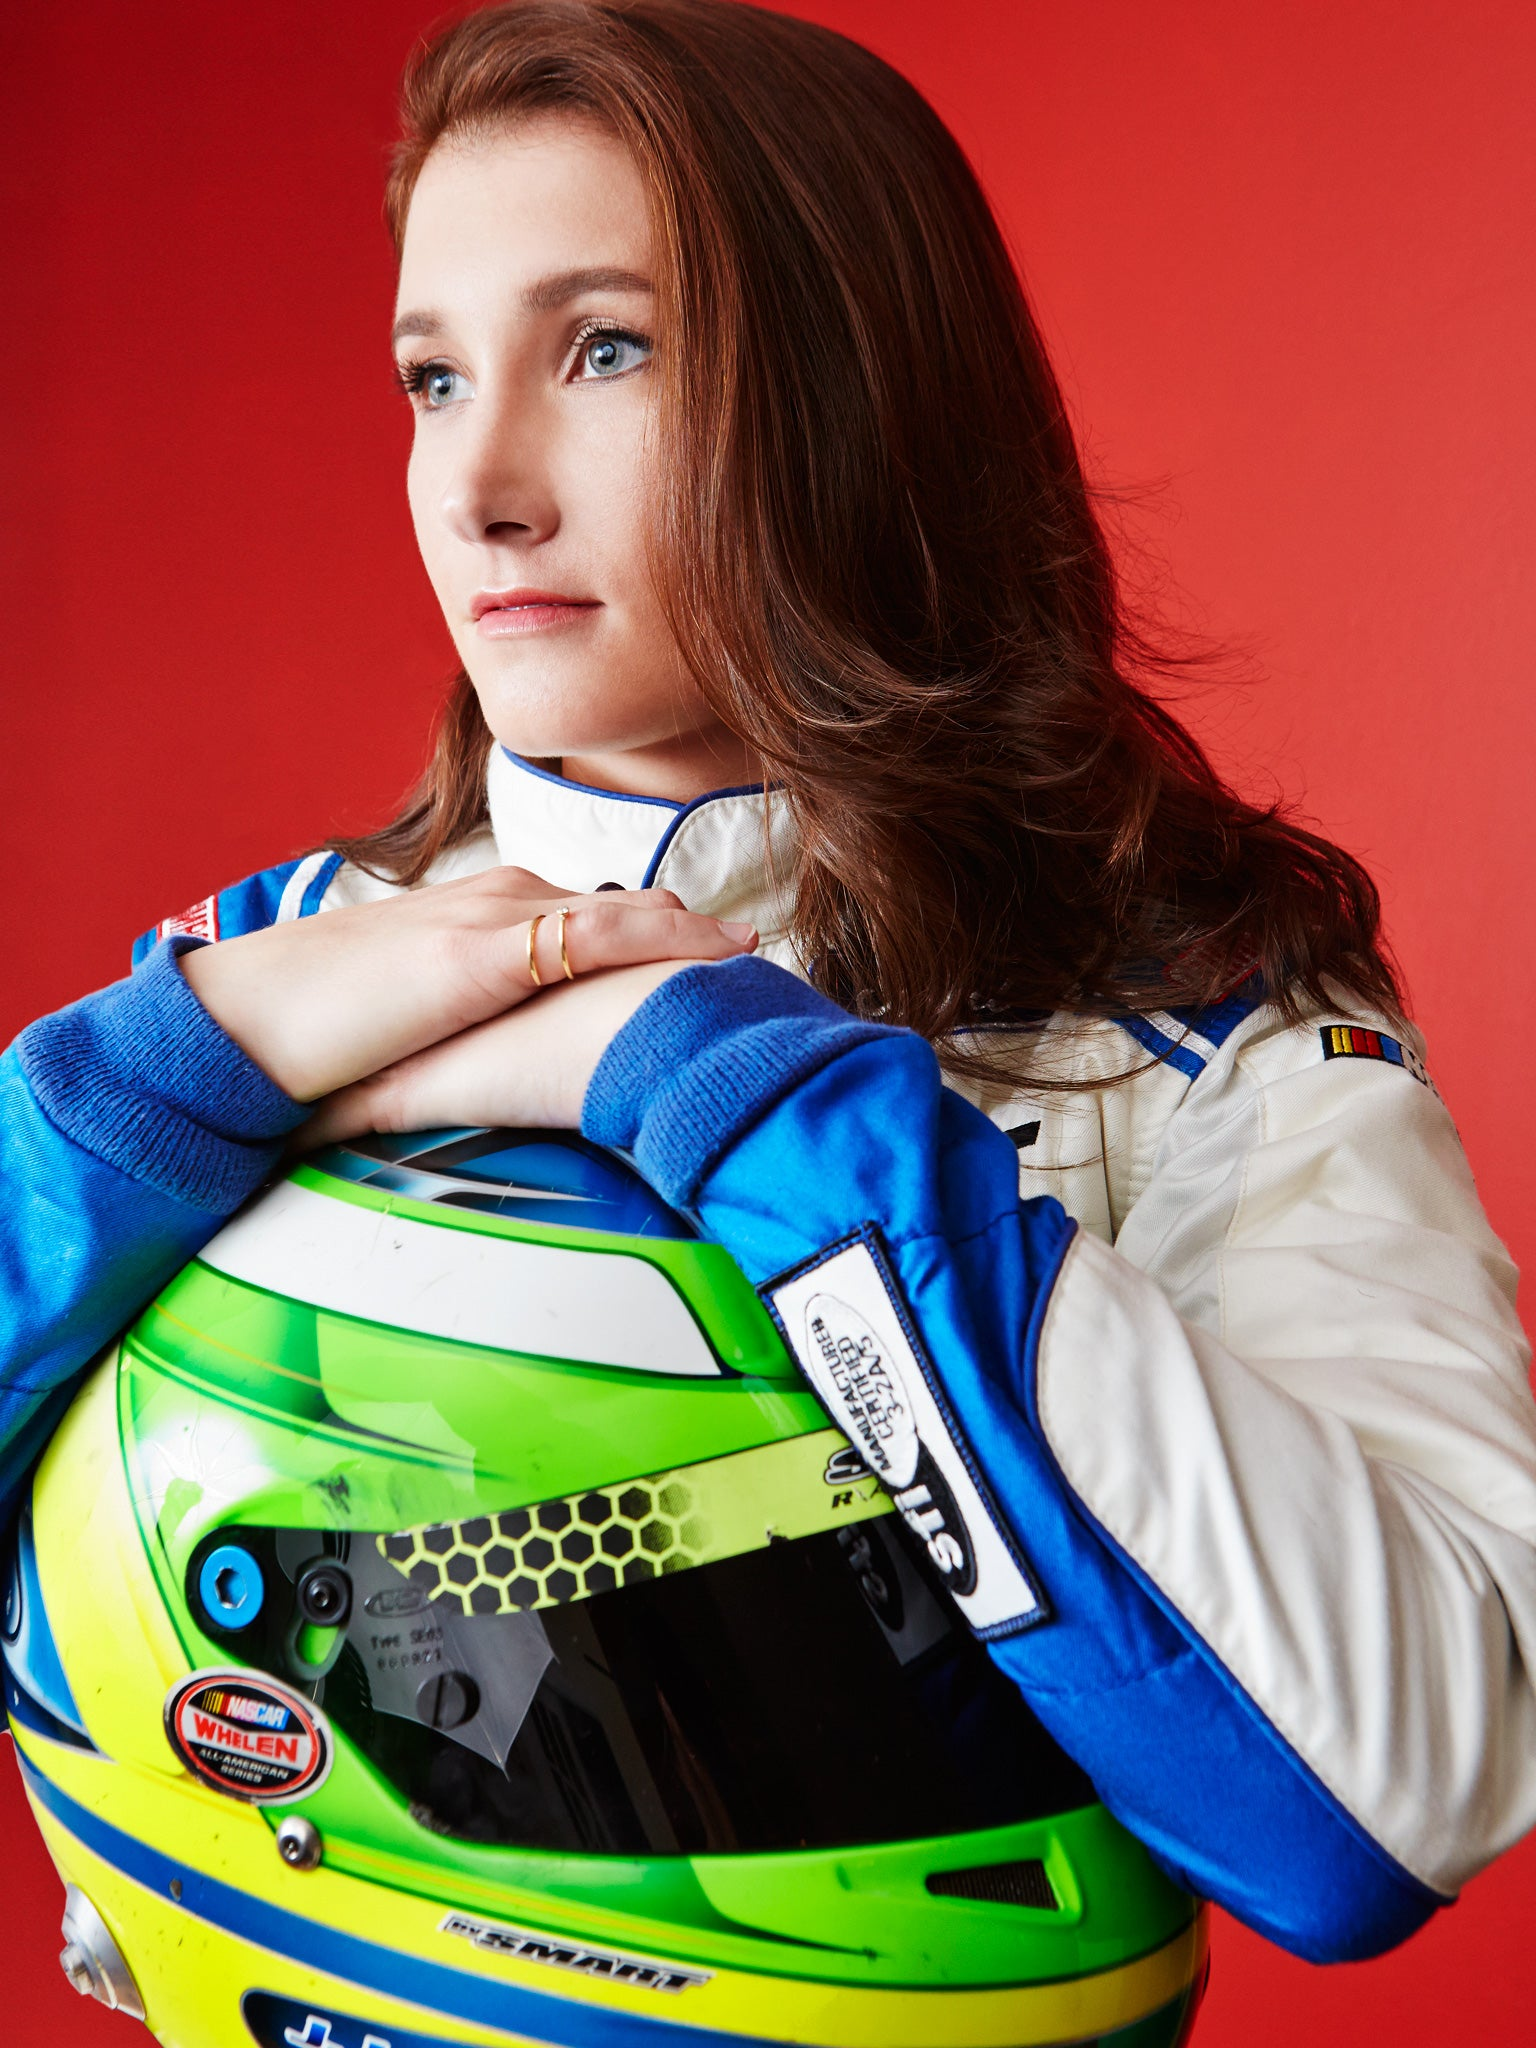 julia landauer NASCAR racer interview with shiffon co meaningful jewelry